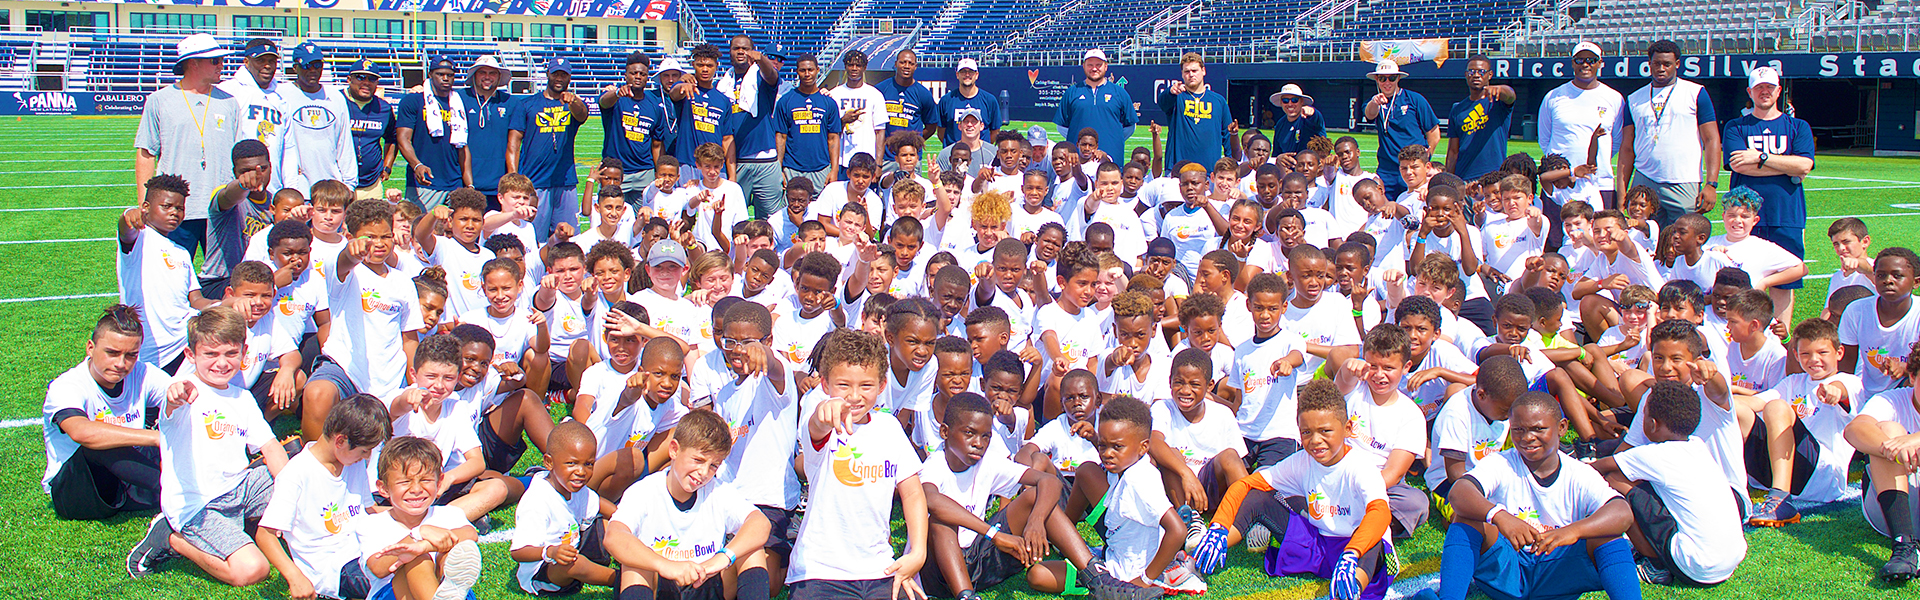 Orange Bowl Youth Football Alliance presented by Metro by T-Mobile ... 80423154e